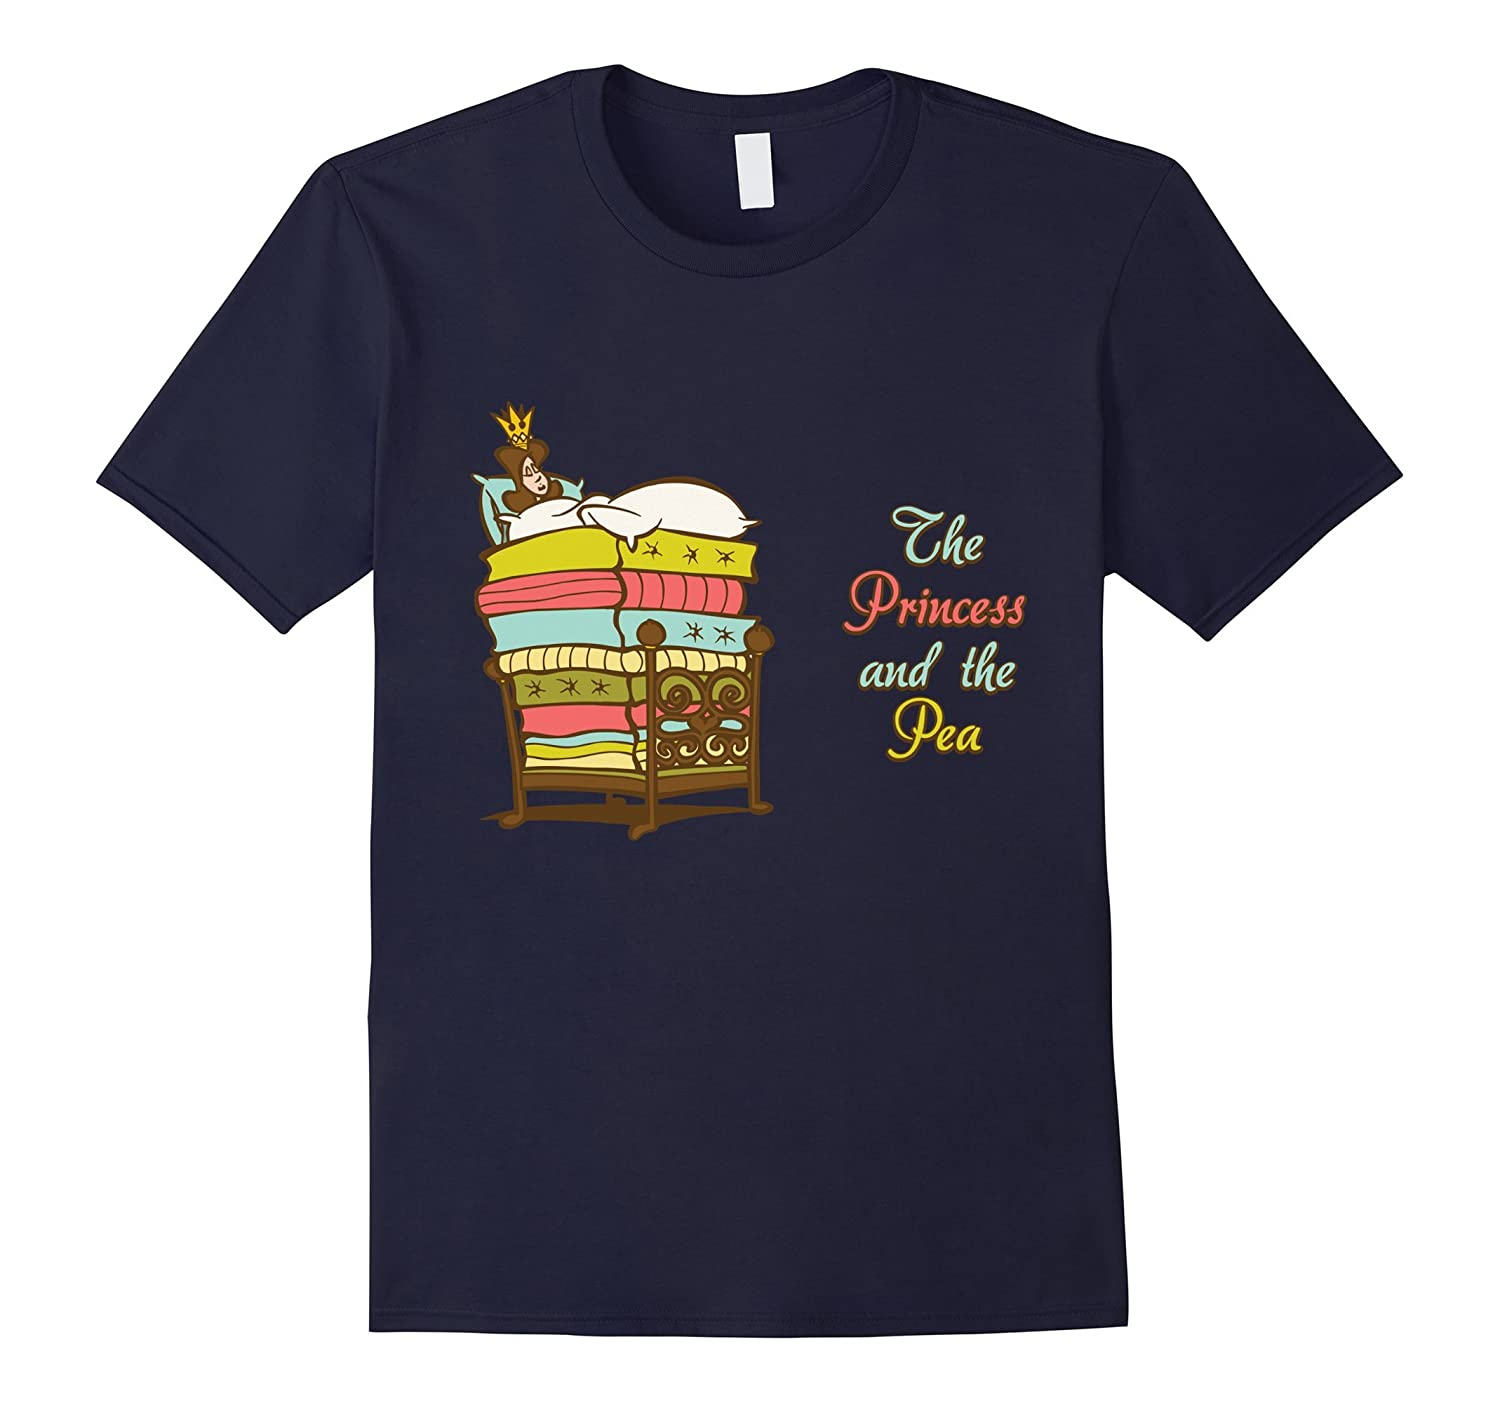 The Princess and The Pea T-Shirt For Kids-Vaci